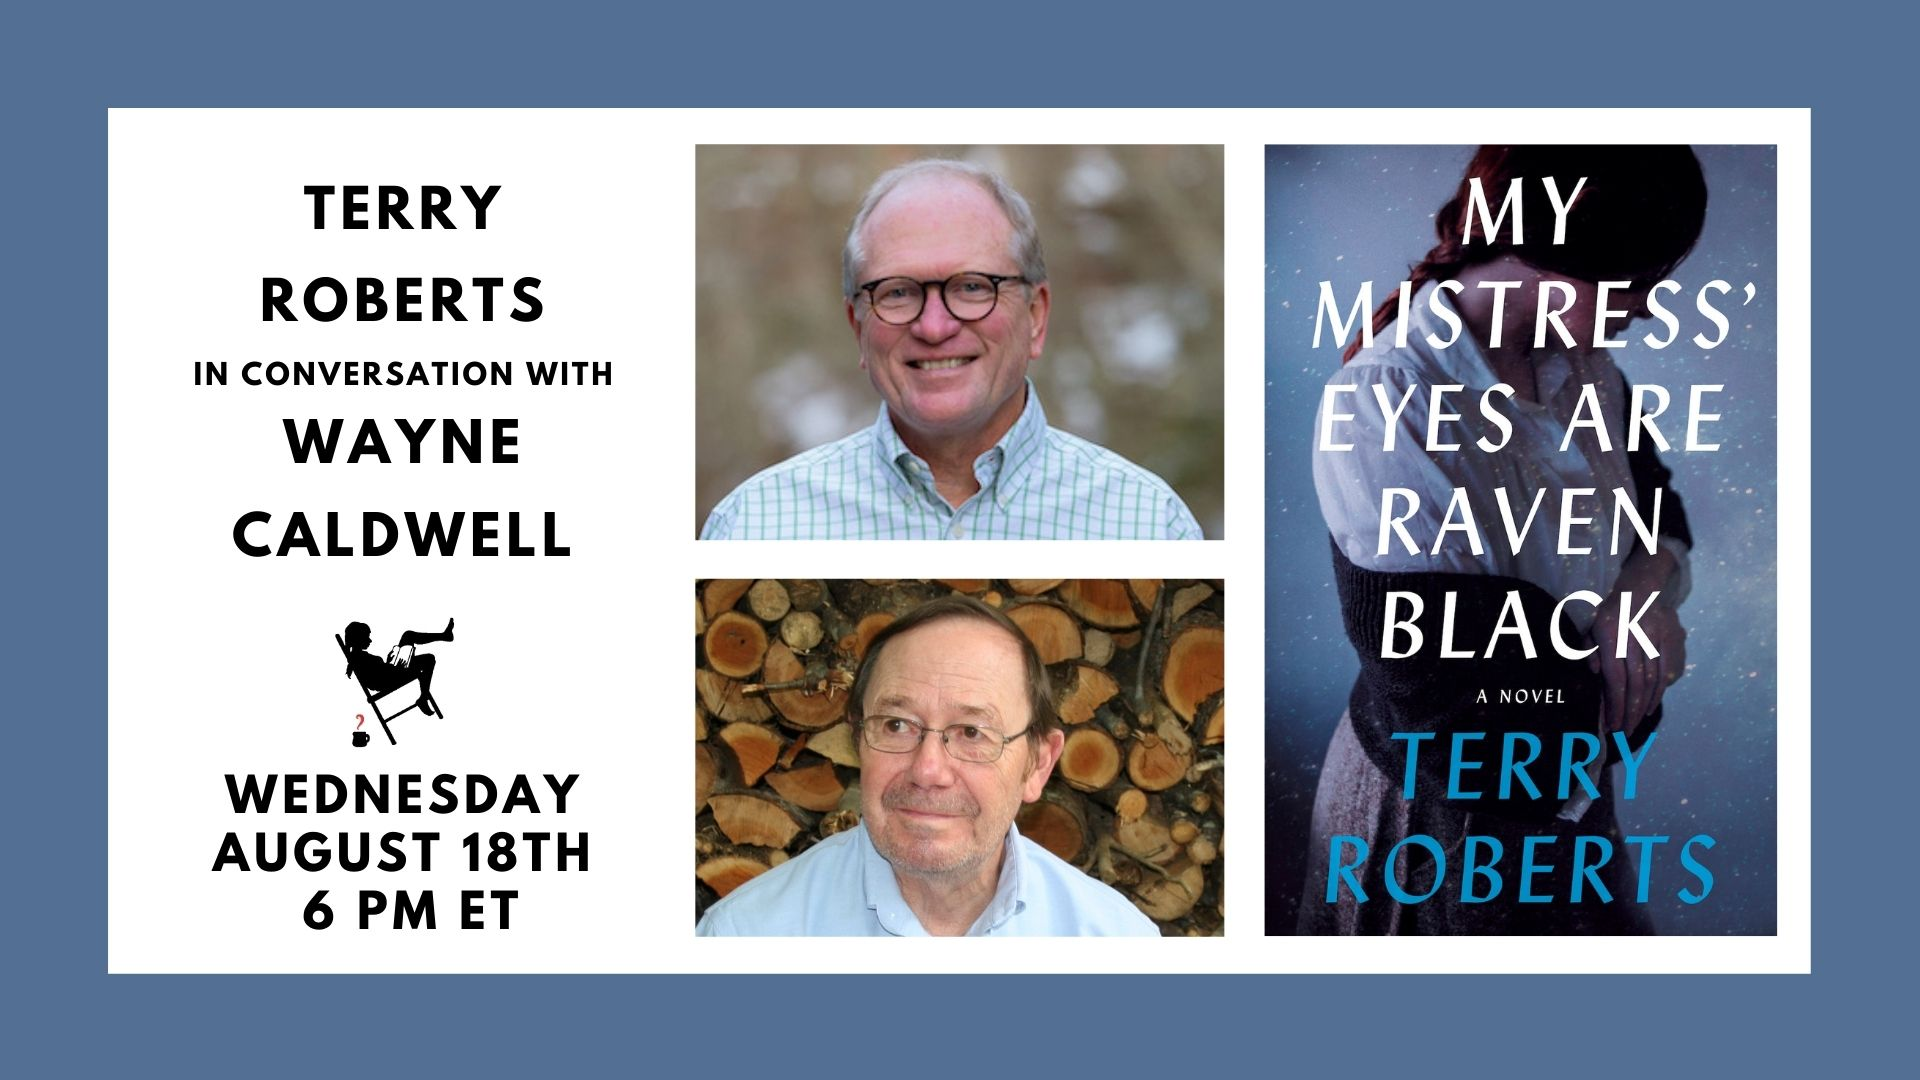 Image shows a blue border with white box containing black text with author's names and event date of 8/18/21 at 6pm. Image also contains photos of Roberts, Caldwell, and the cover of the featured book.